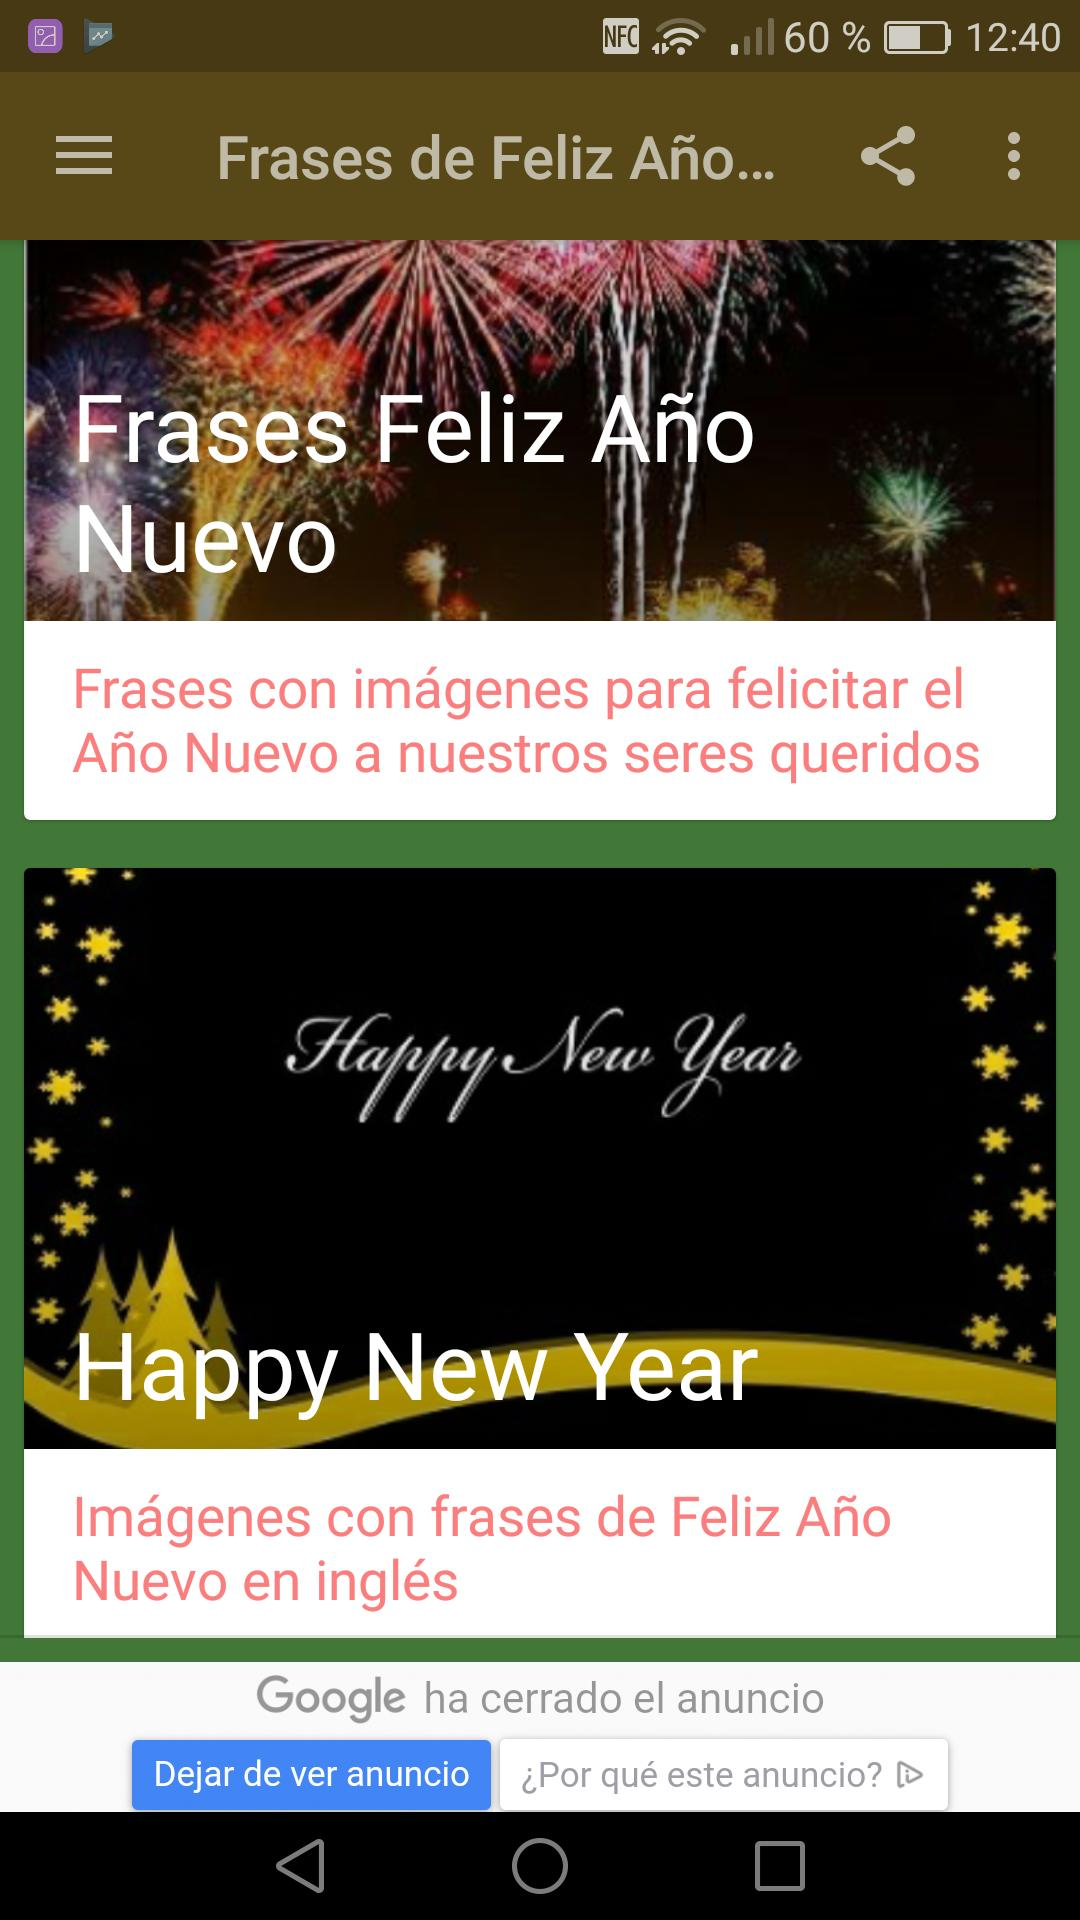 Frases De Feliz Año Nuevo 2020 For Android Apk Download